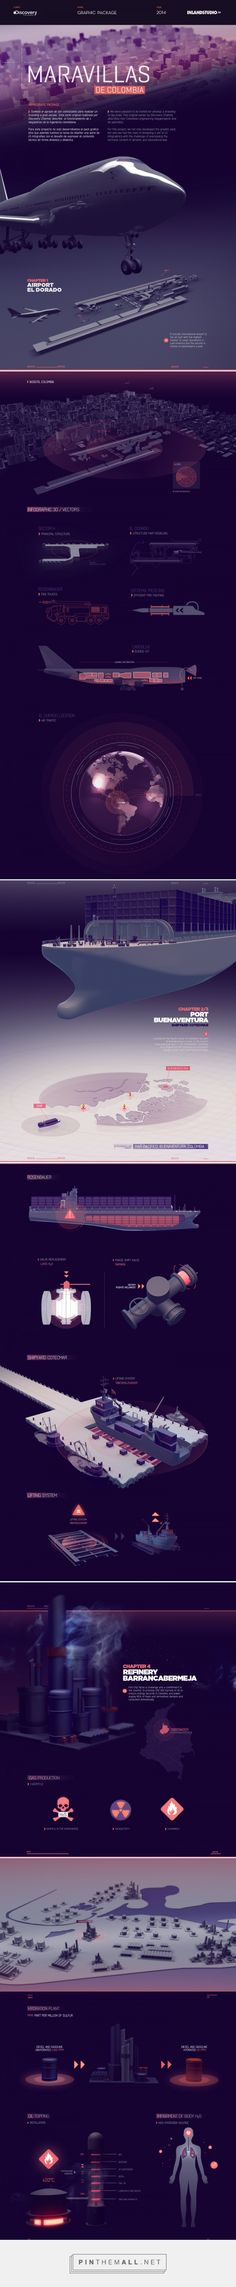 DISCOVERY. MARAVILLAS DE COLOMBIA II on Behance... - a grouped images picture - Pin Them All Web Design, Graphic Design, Data Visualisation, Behance, Interface Design, Motion Graphics, Futuristic, Infographics, Discovery